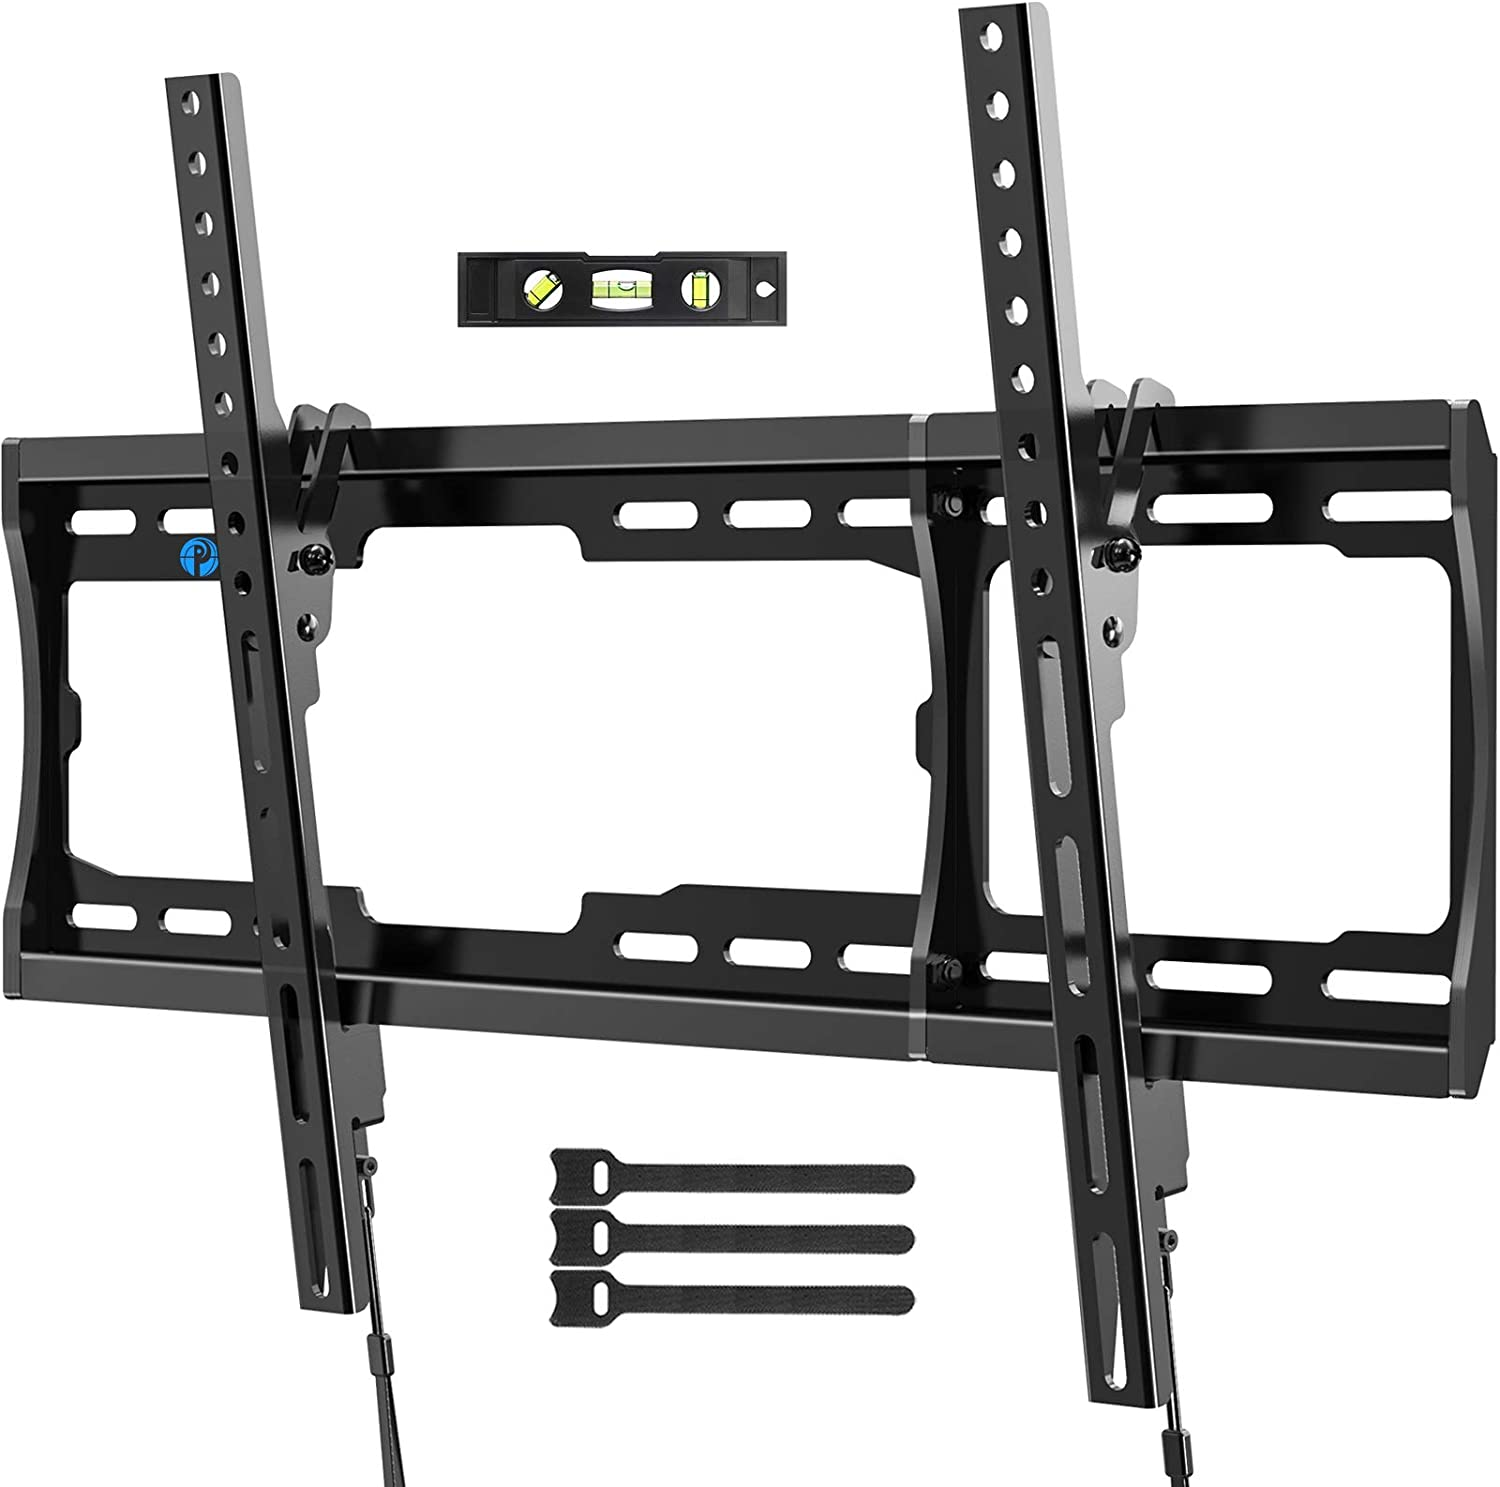 Pipishell Tilt TV Wall Mount Bracket 26-75 Profile Ranking TOP4 Max 61% OFF Low for Most